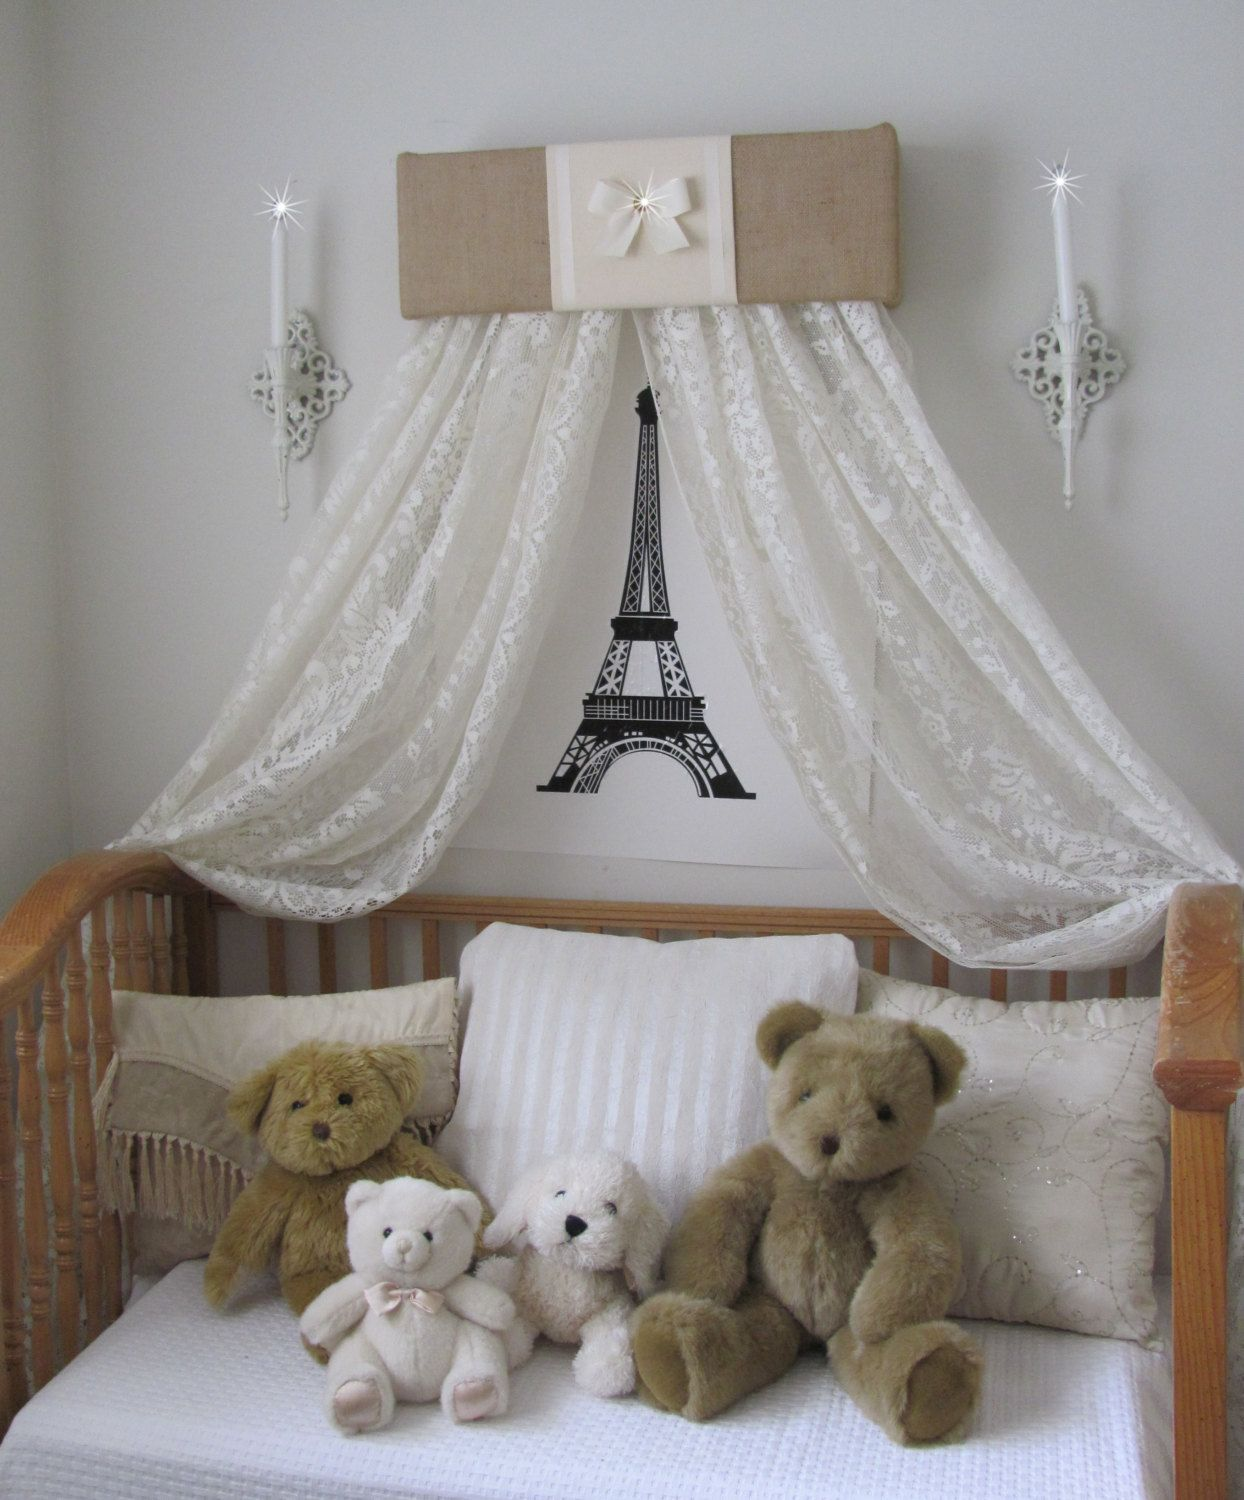 Crib for sale in thailand - Burlap Cream Sale Dosel Padded Bed Teester Crib Canopy Crown Girls Room Decor Wall Hanging Baby